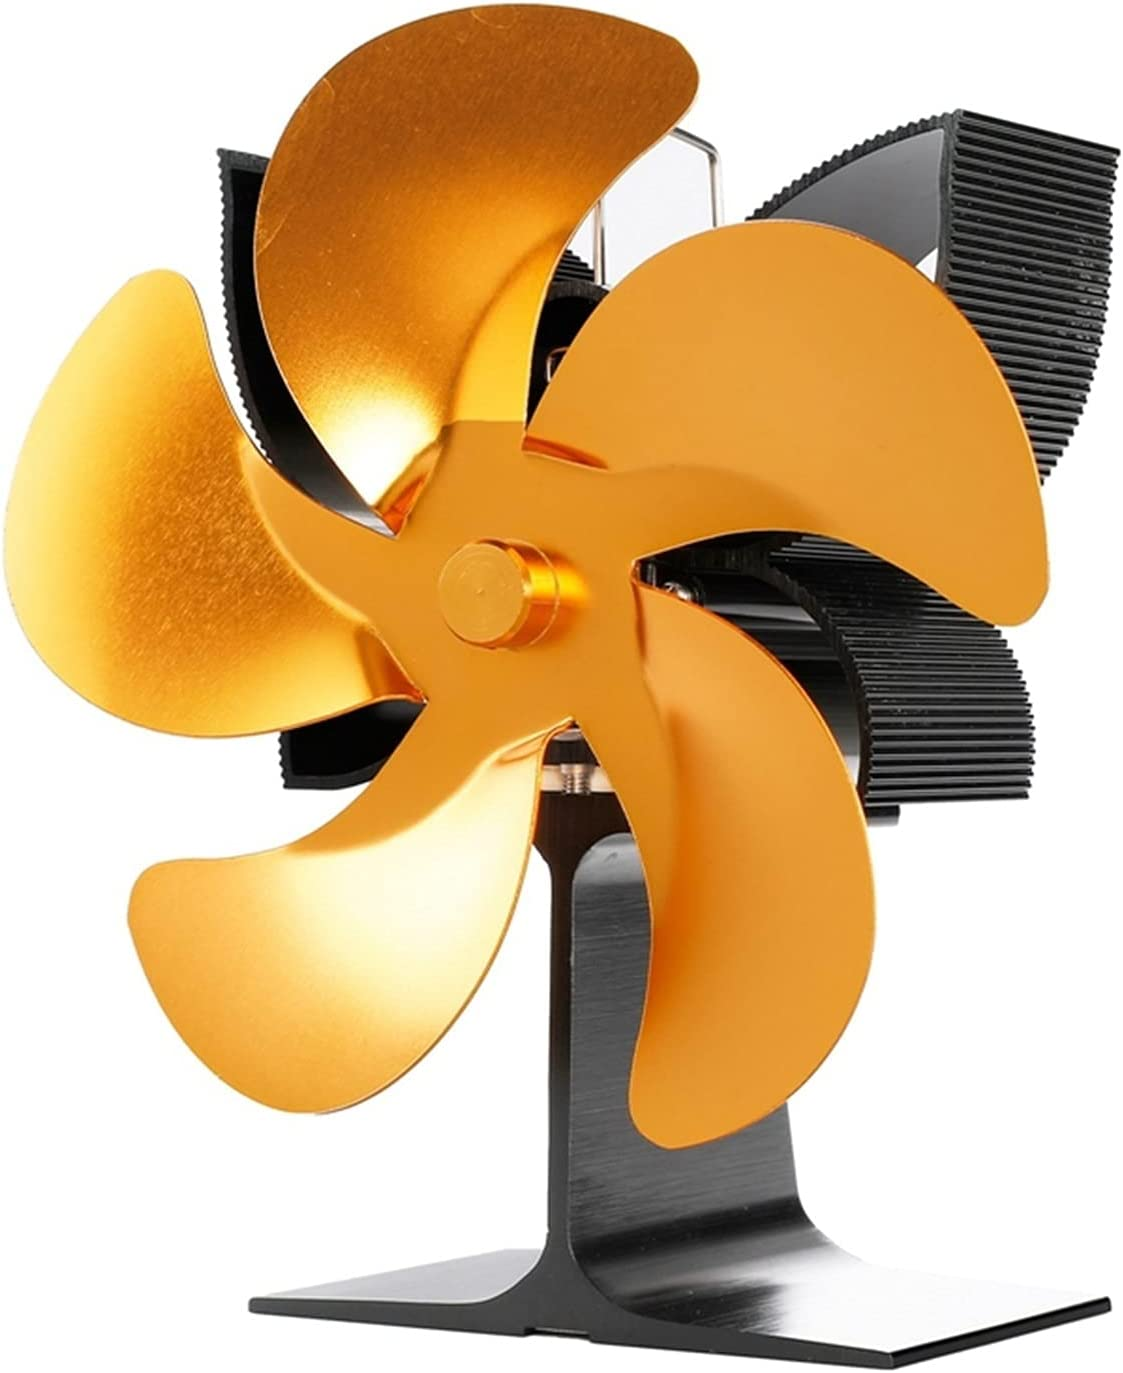 zeyumaoyi 5-Blade Thermal 35% OFF Special Campaign Fireplace Fan Heater